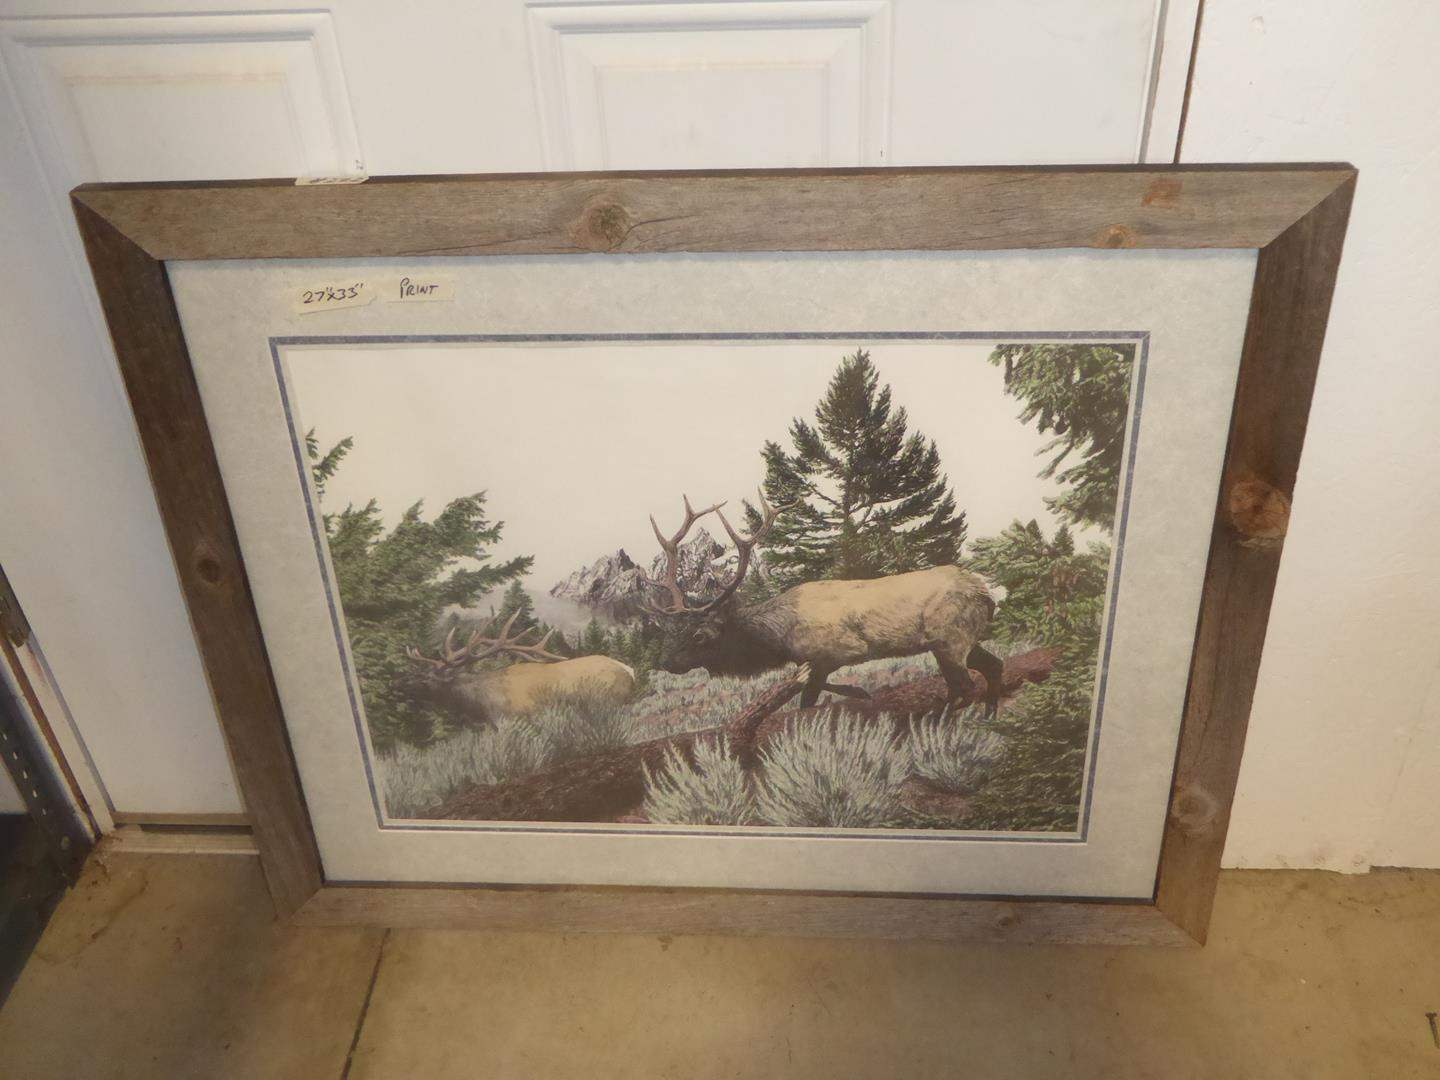 Lot # 222 - Rustic Wooden Framed Print of Two Elks by Terry Maddox  (main image)